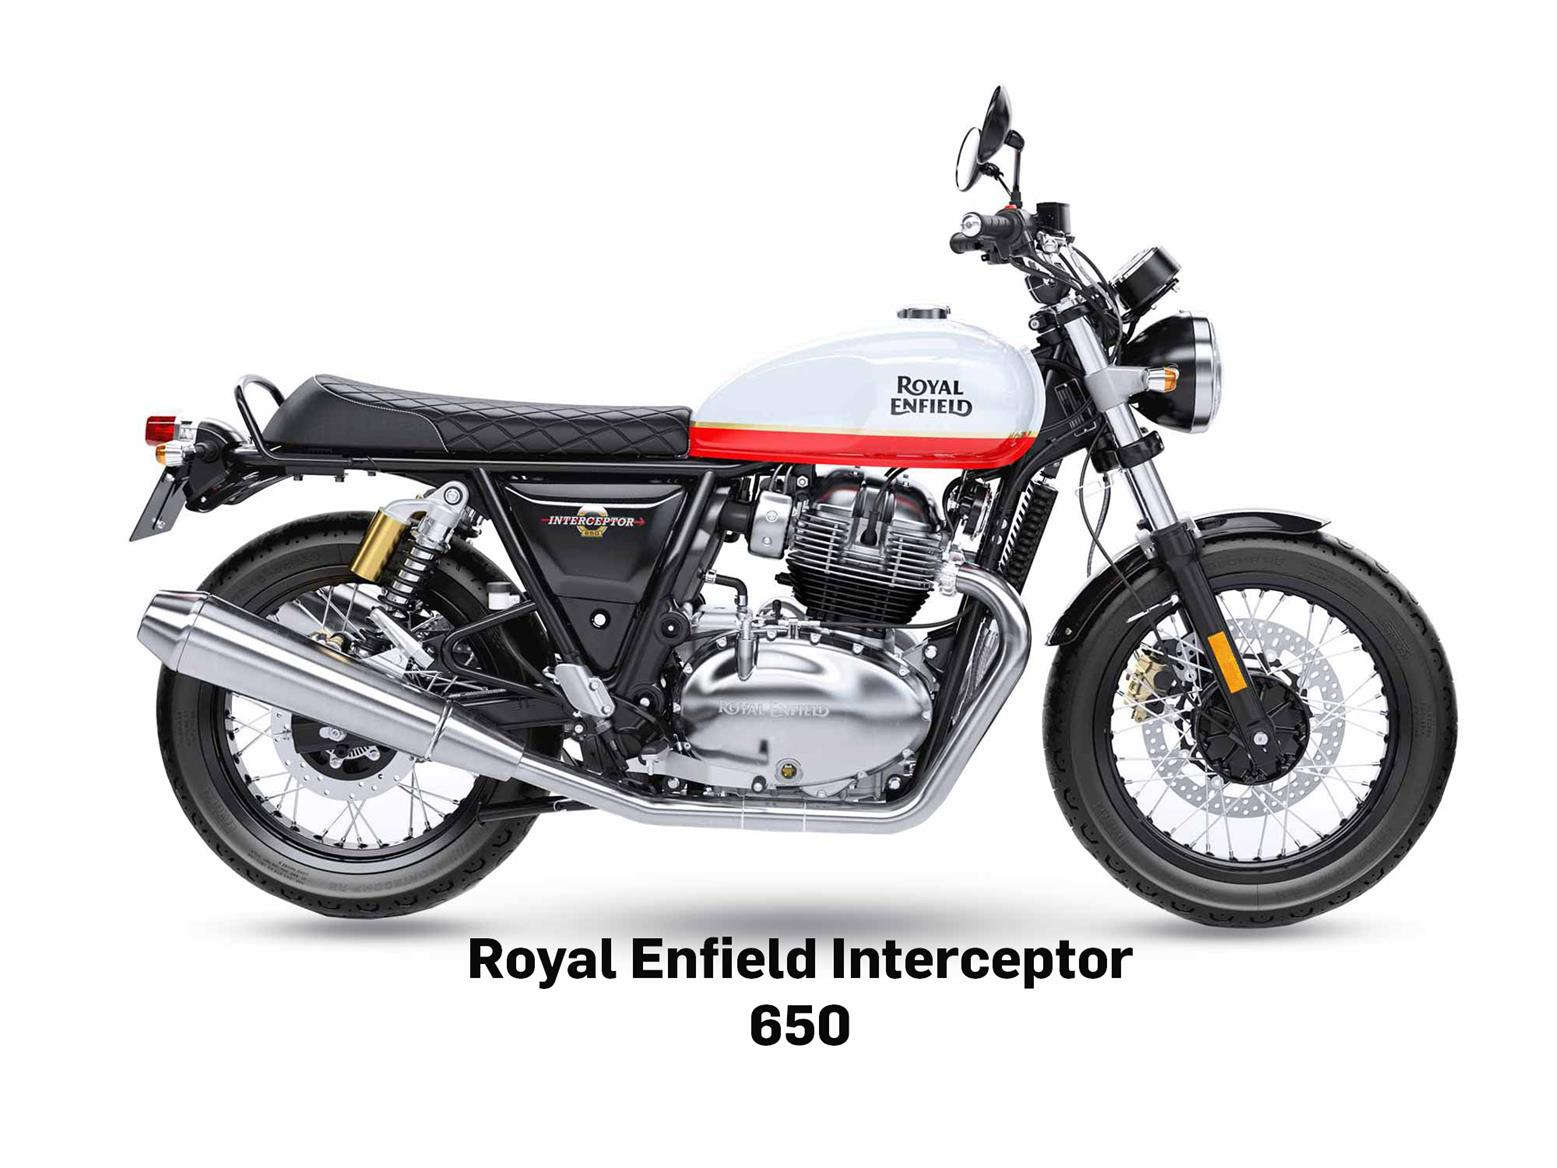 Read MCN's expert Royal Enfield Interceptor 650 long term test review here